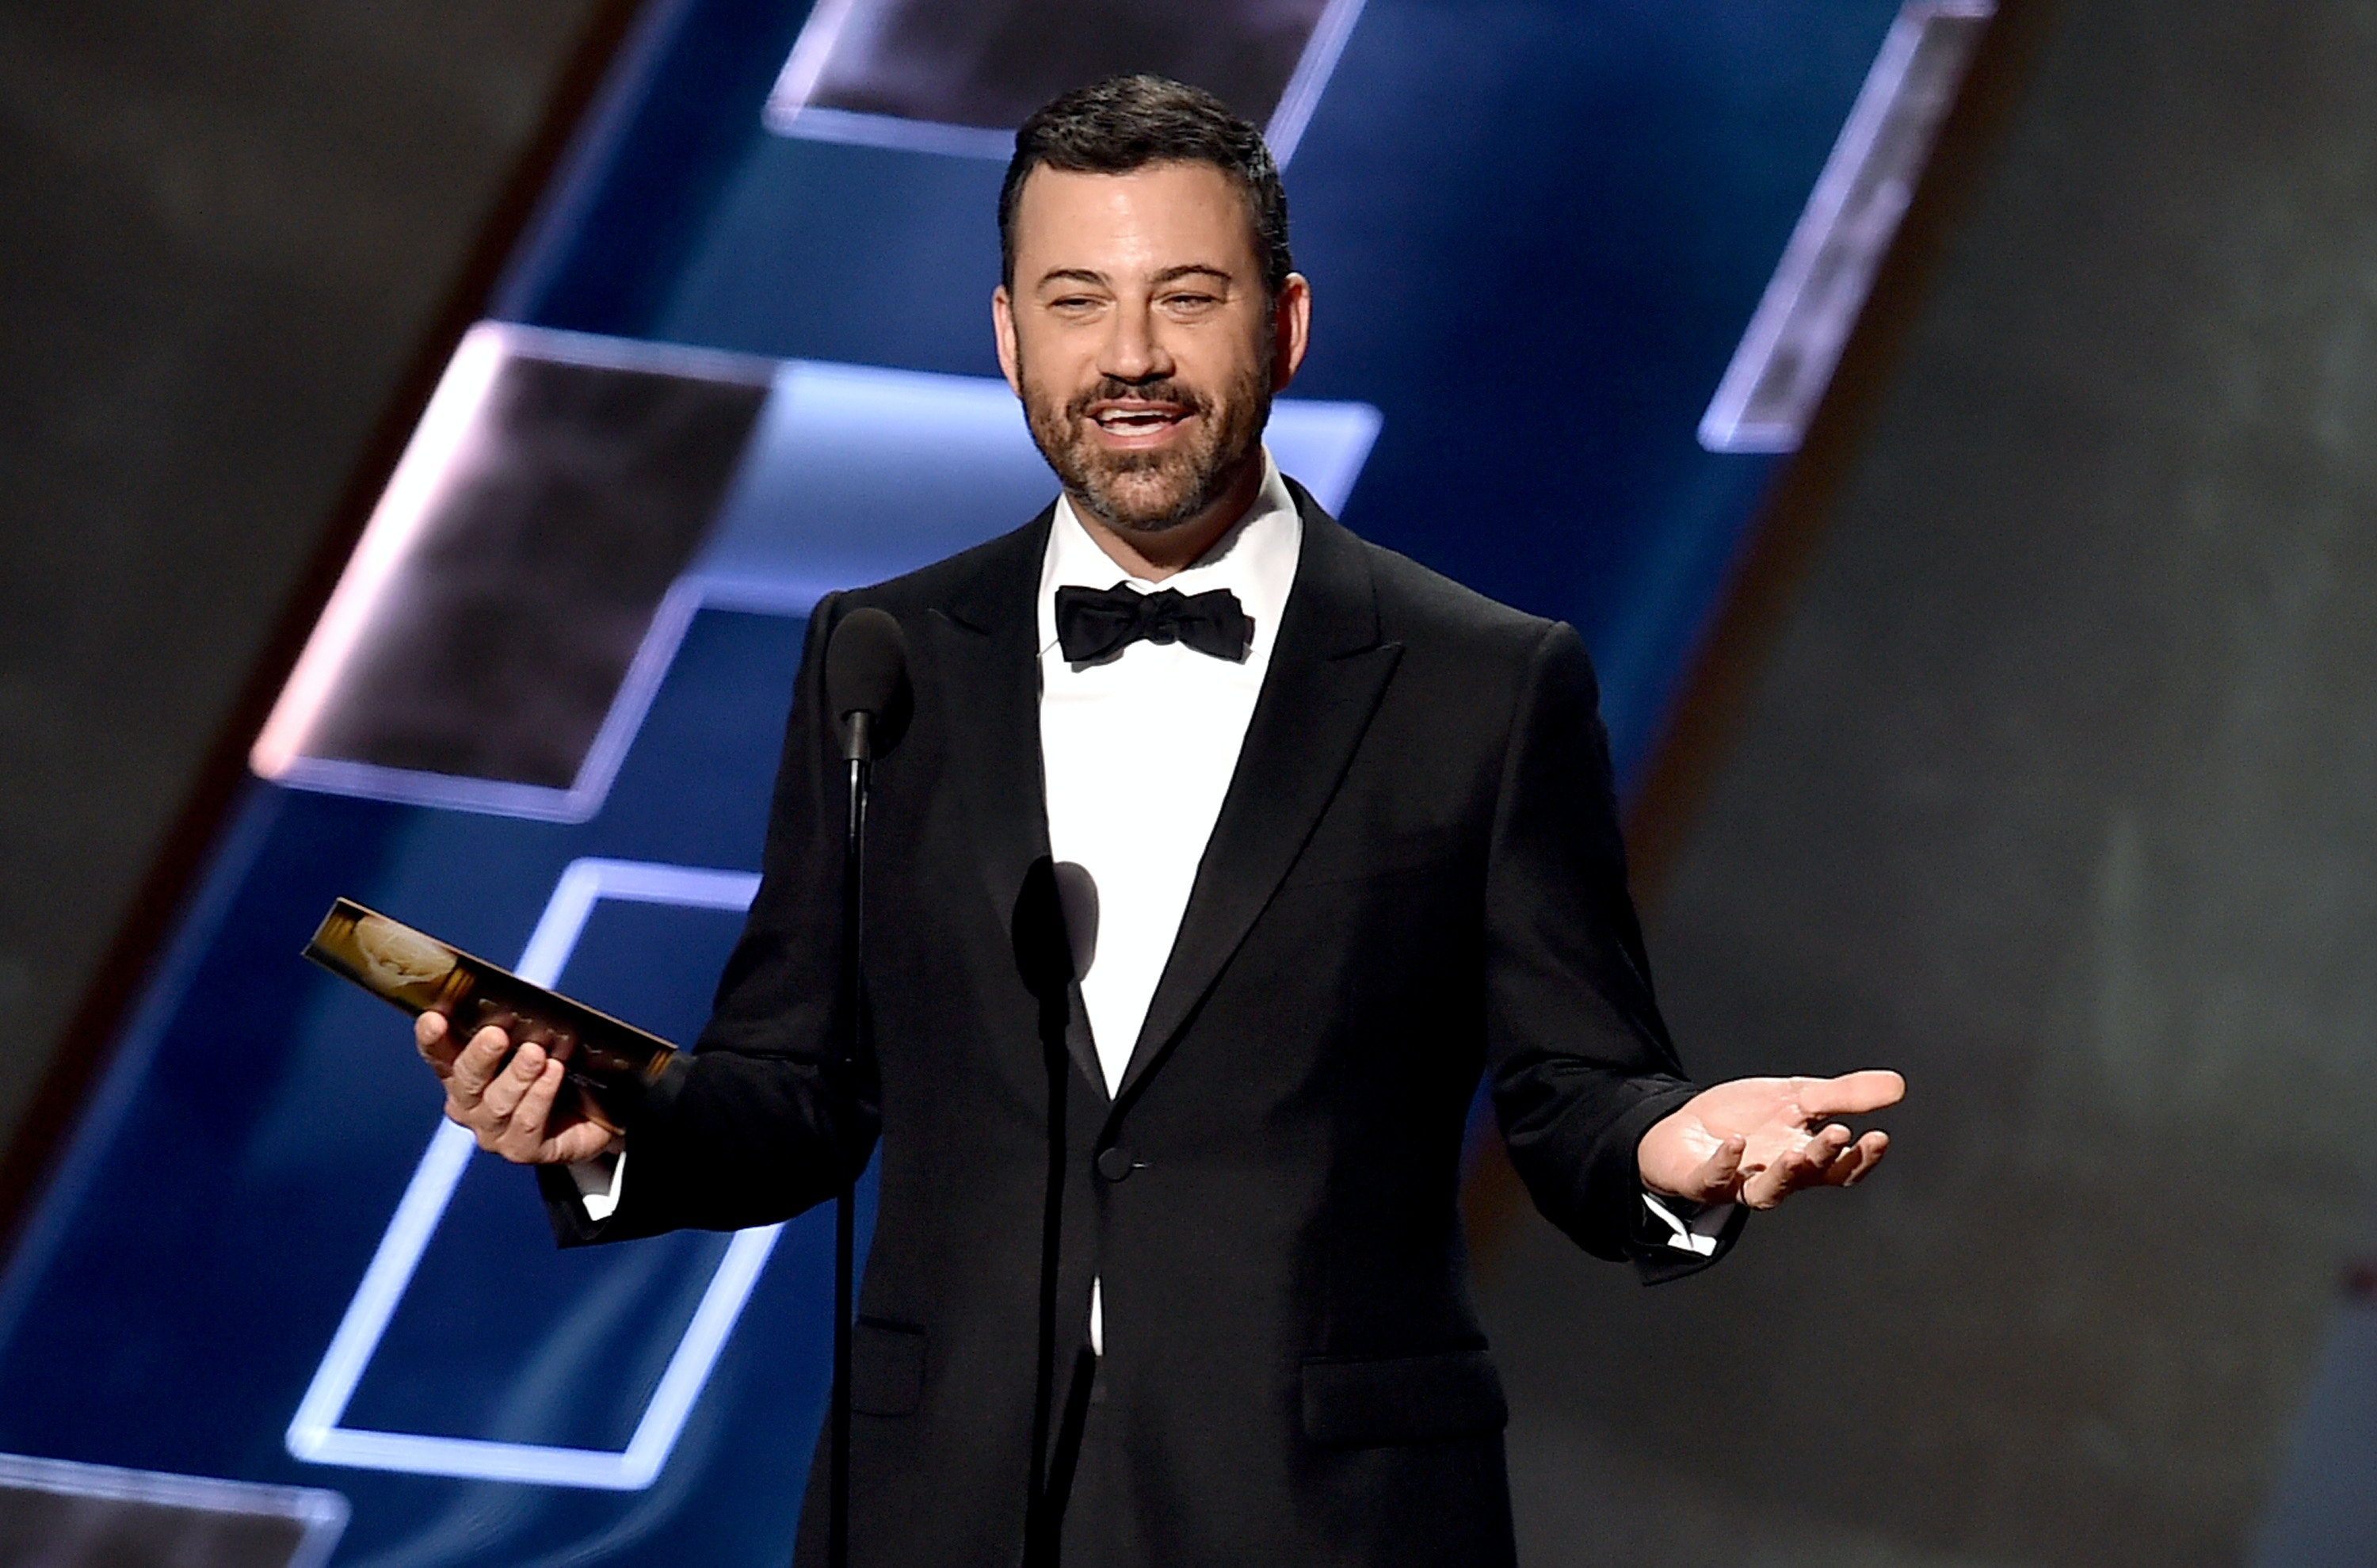 The 7 Funniest Jokes From Jimmy Kimmel's Emmys 2016 Monologue